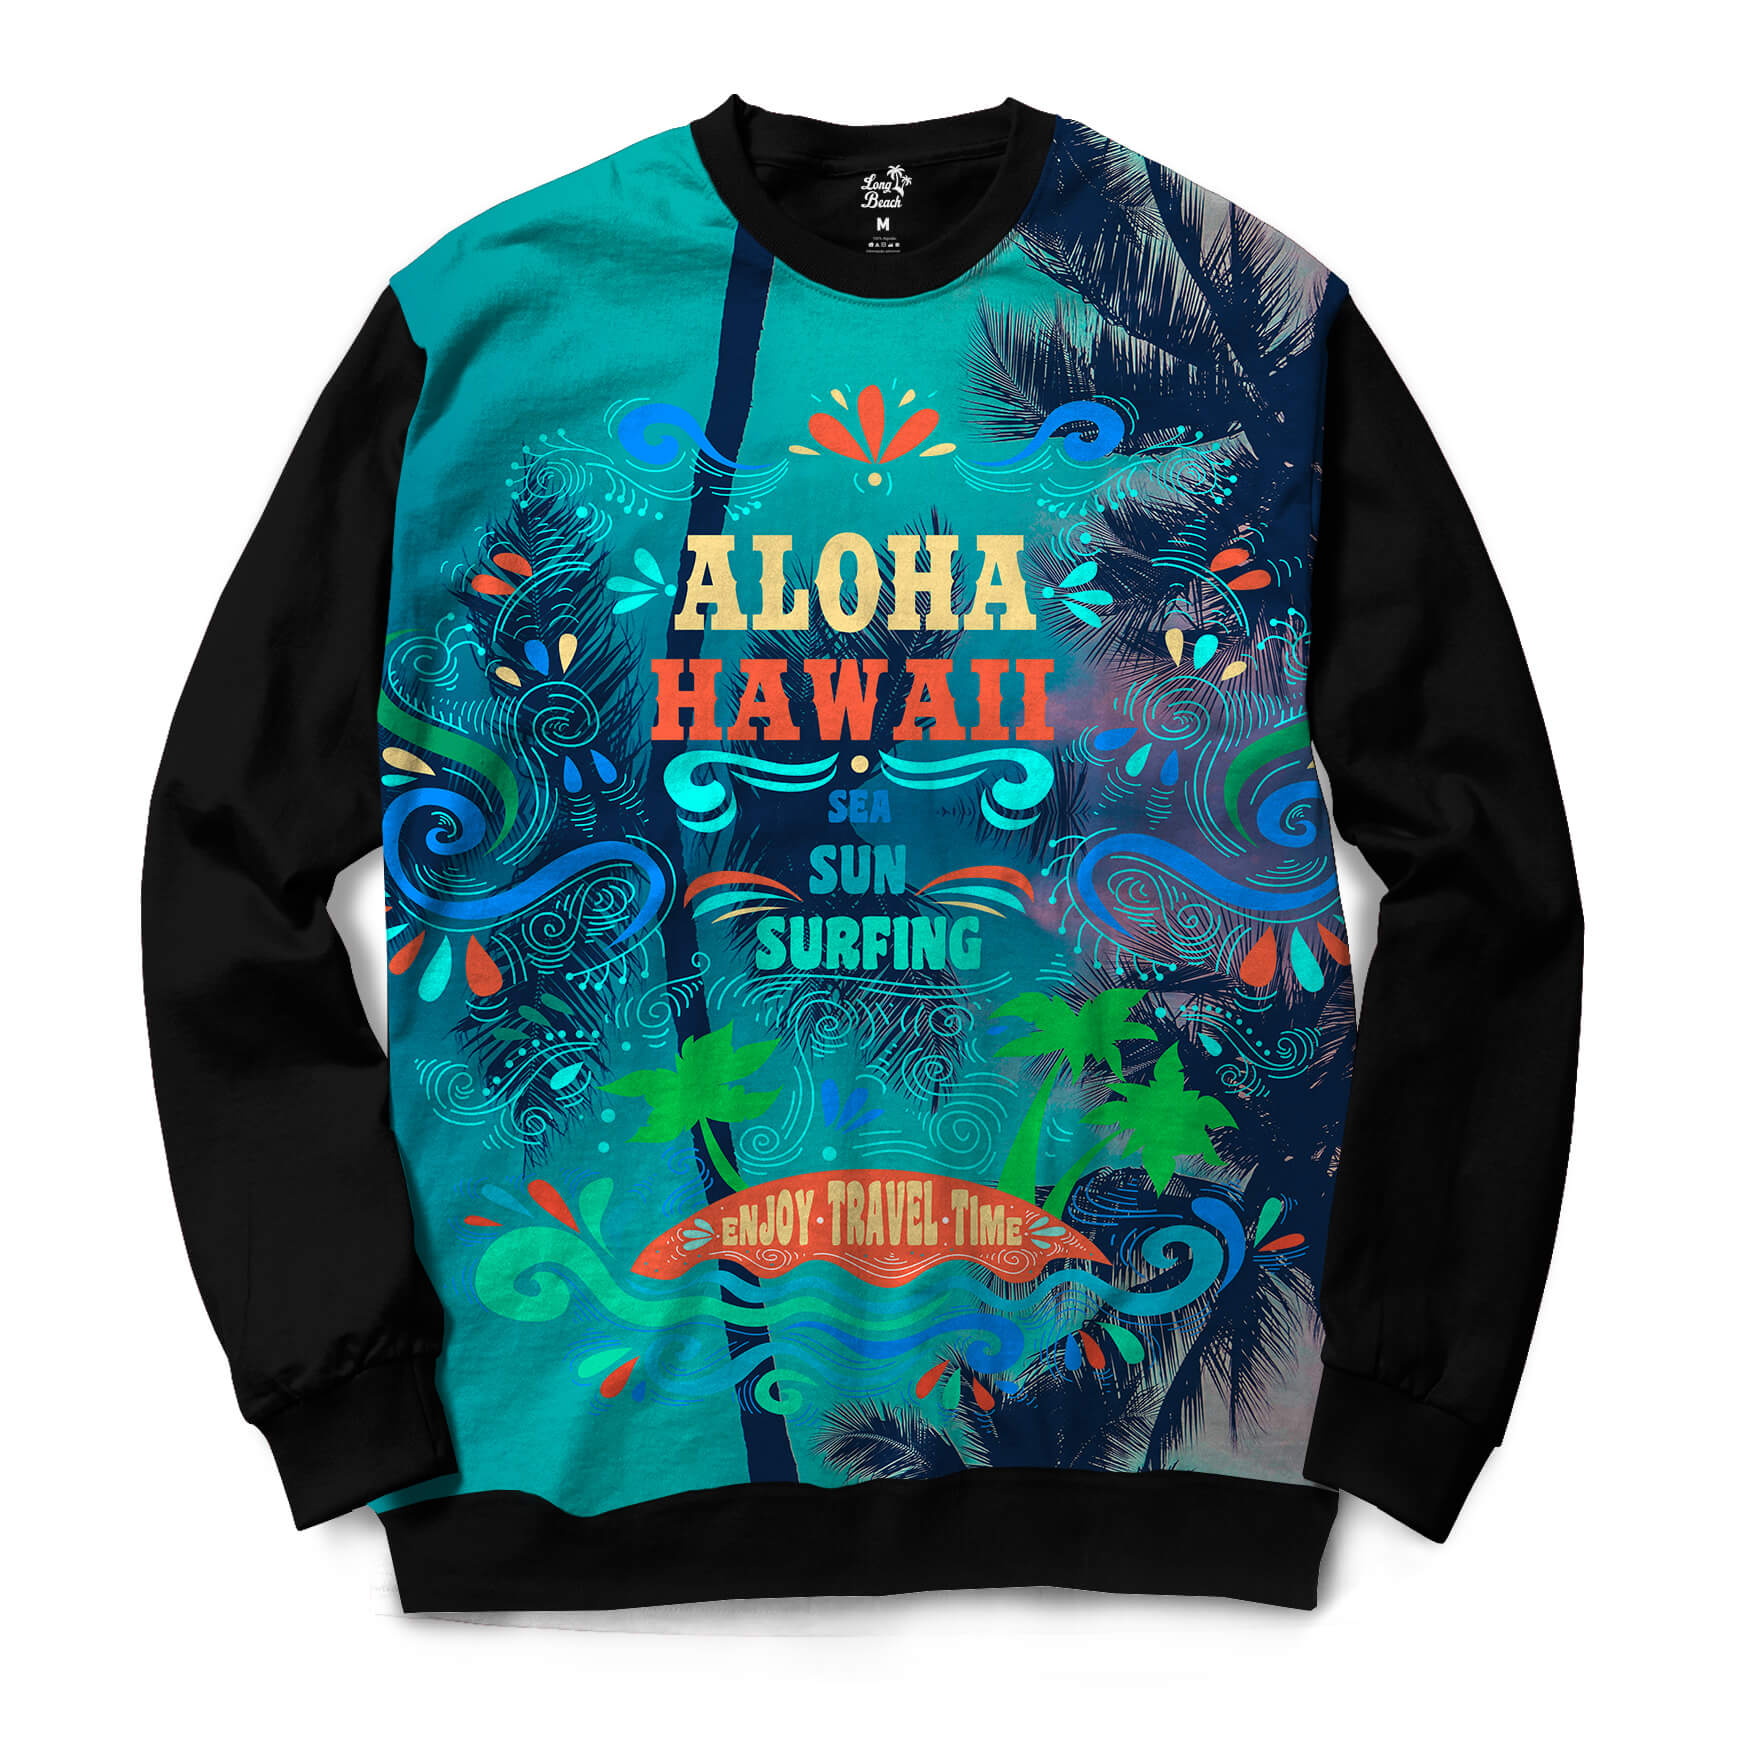 Moletom Gola Careca BSC Hawaii Aloha Sublimada Colors